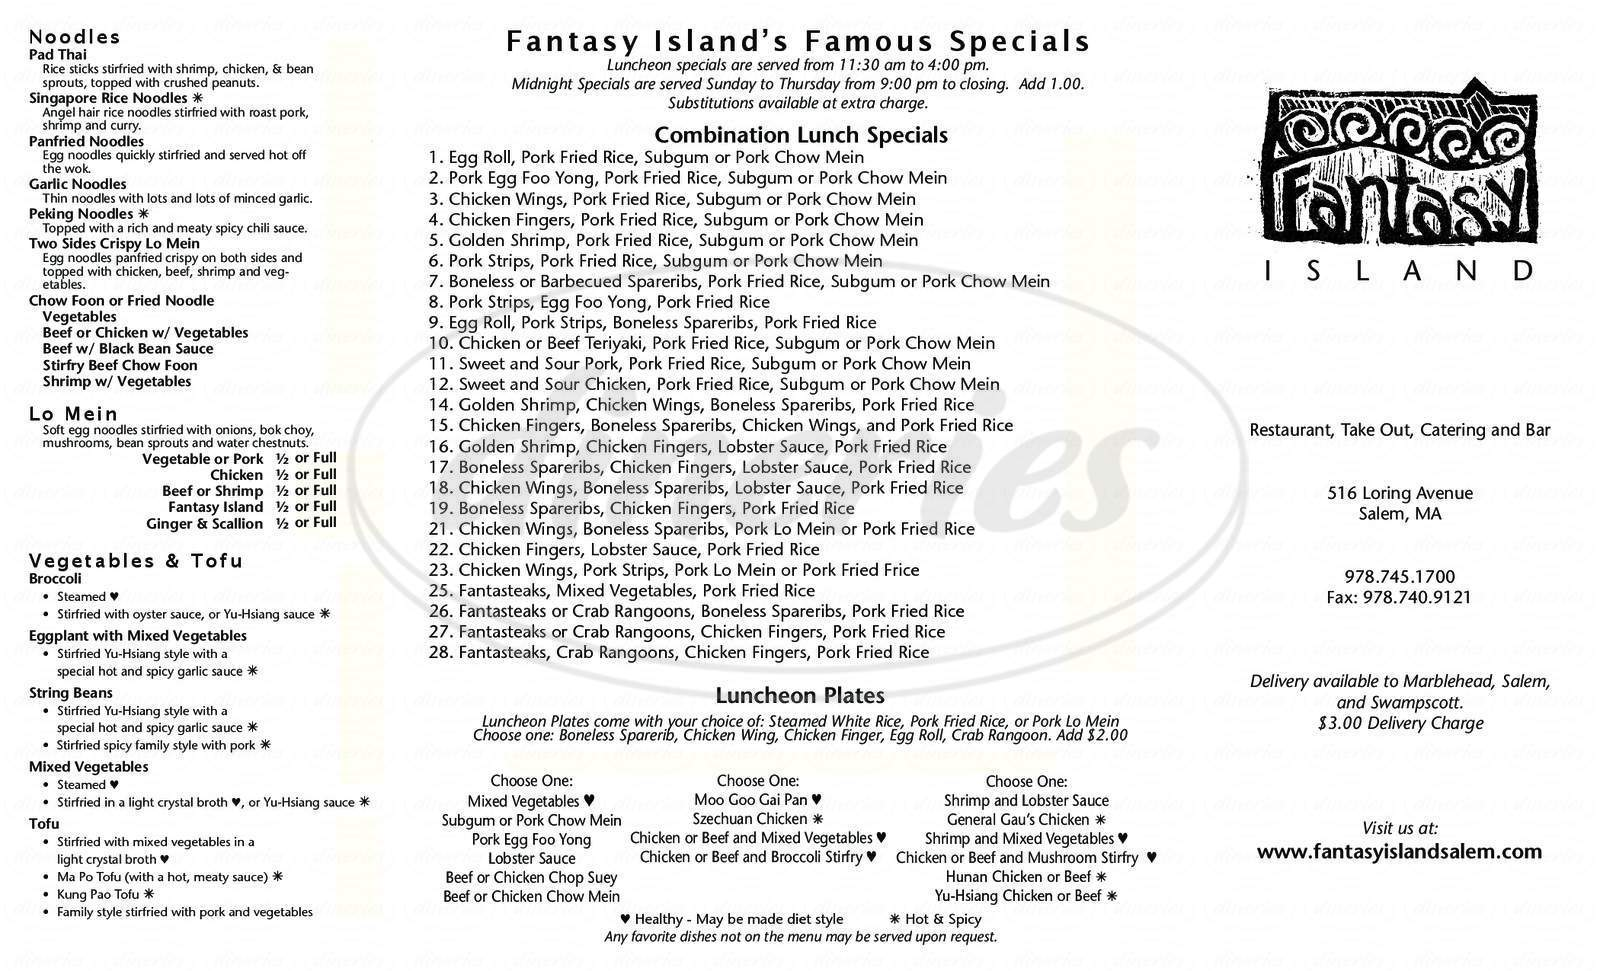 menu for Fantasy Island